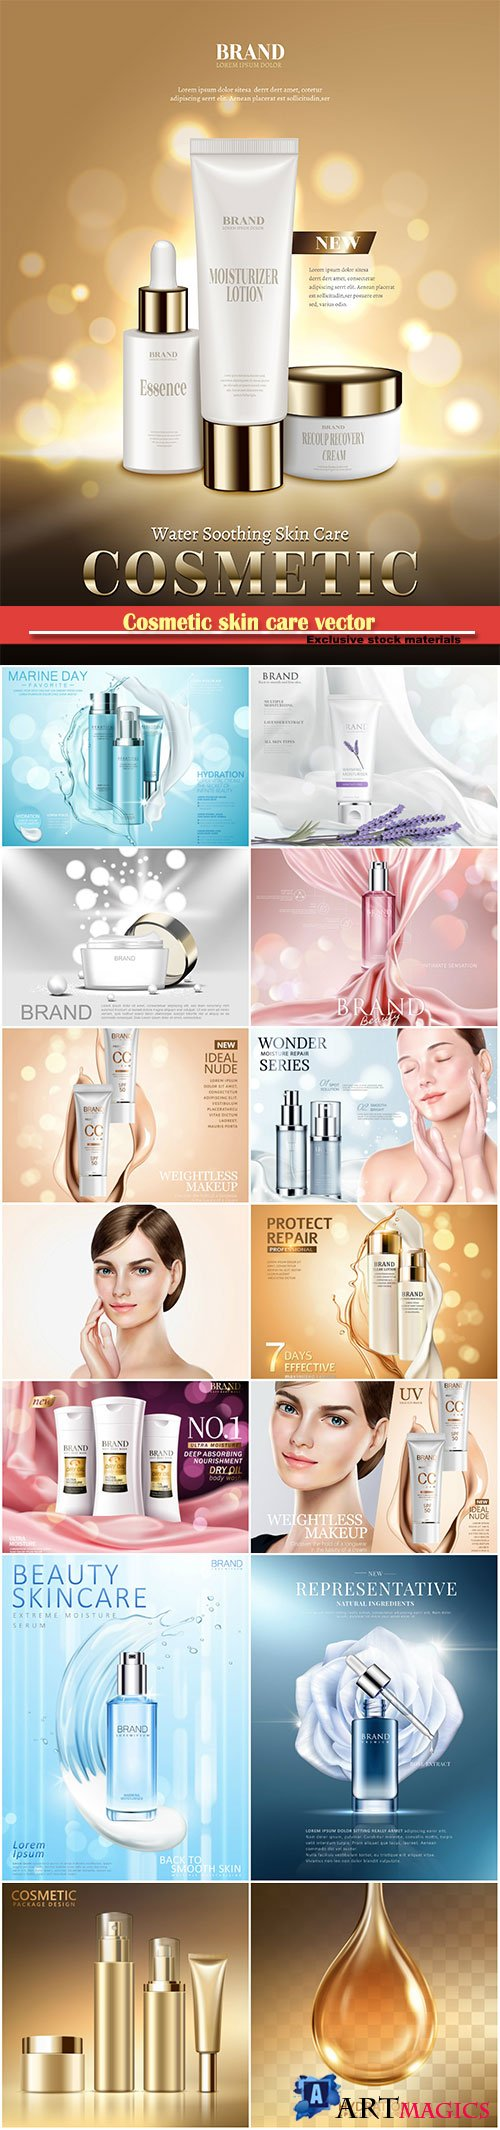 Cosmetic skin care vector, moisturizing cream in 3d illustration